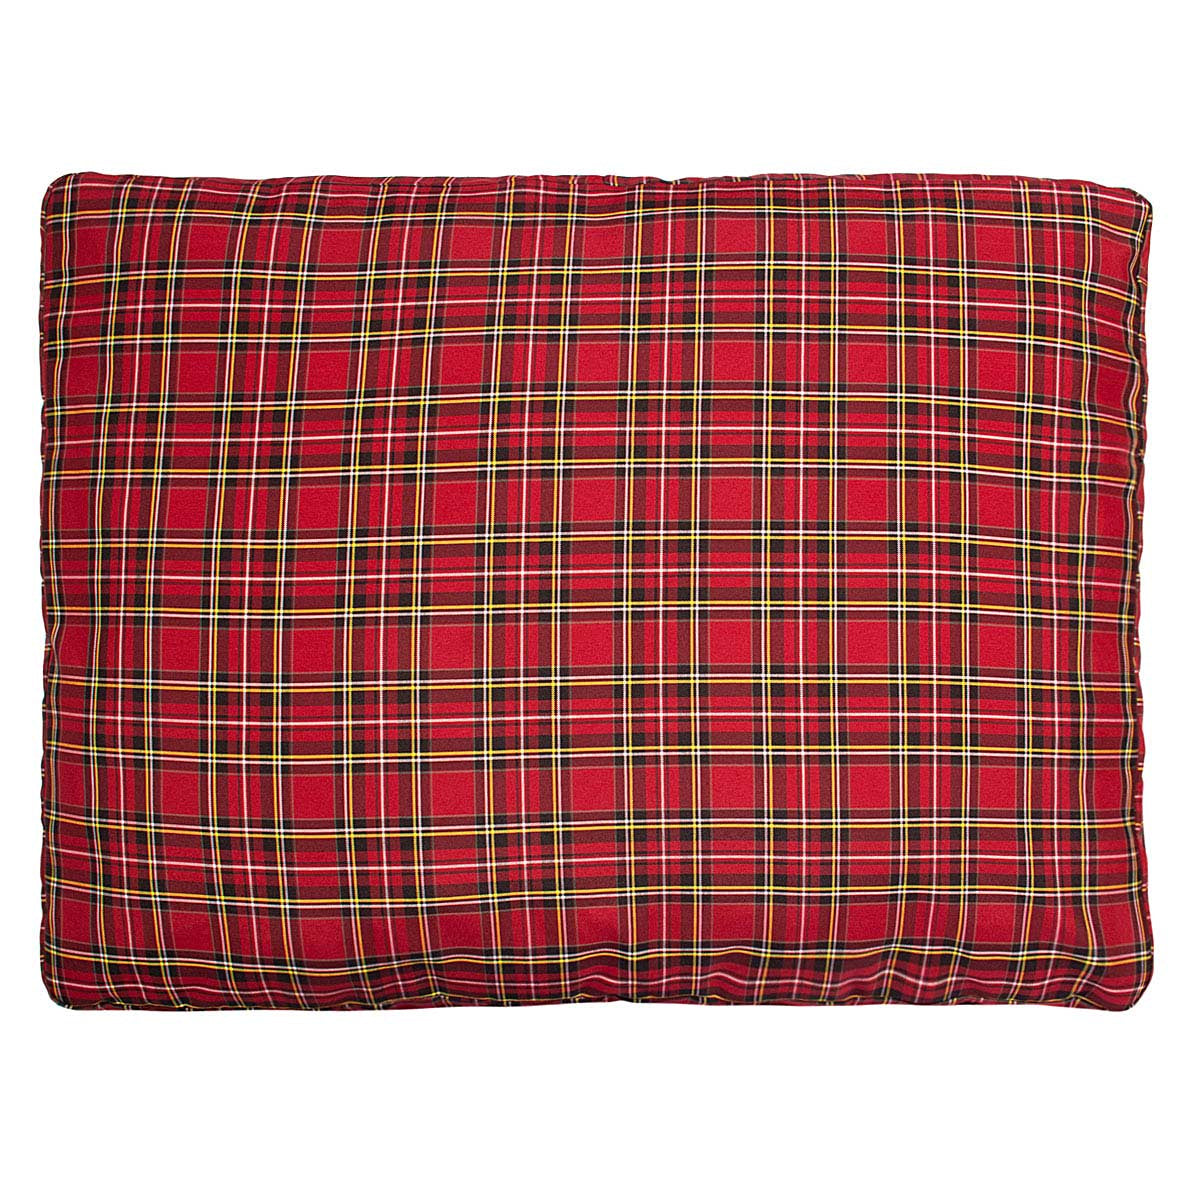 Halo EC Red Plaid Rectangular Dog Bed_2